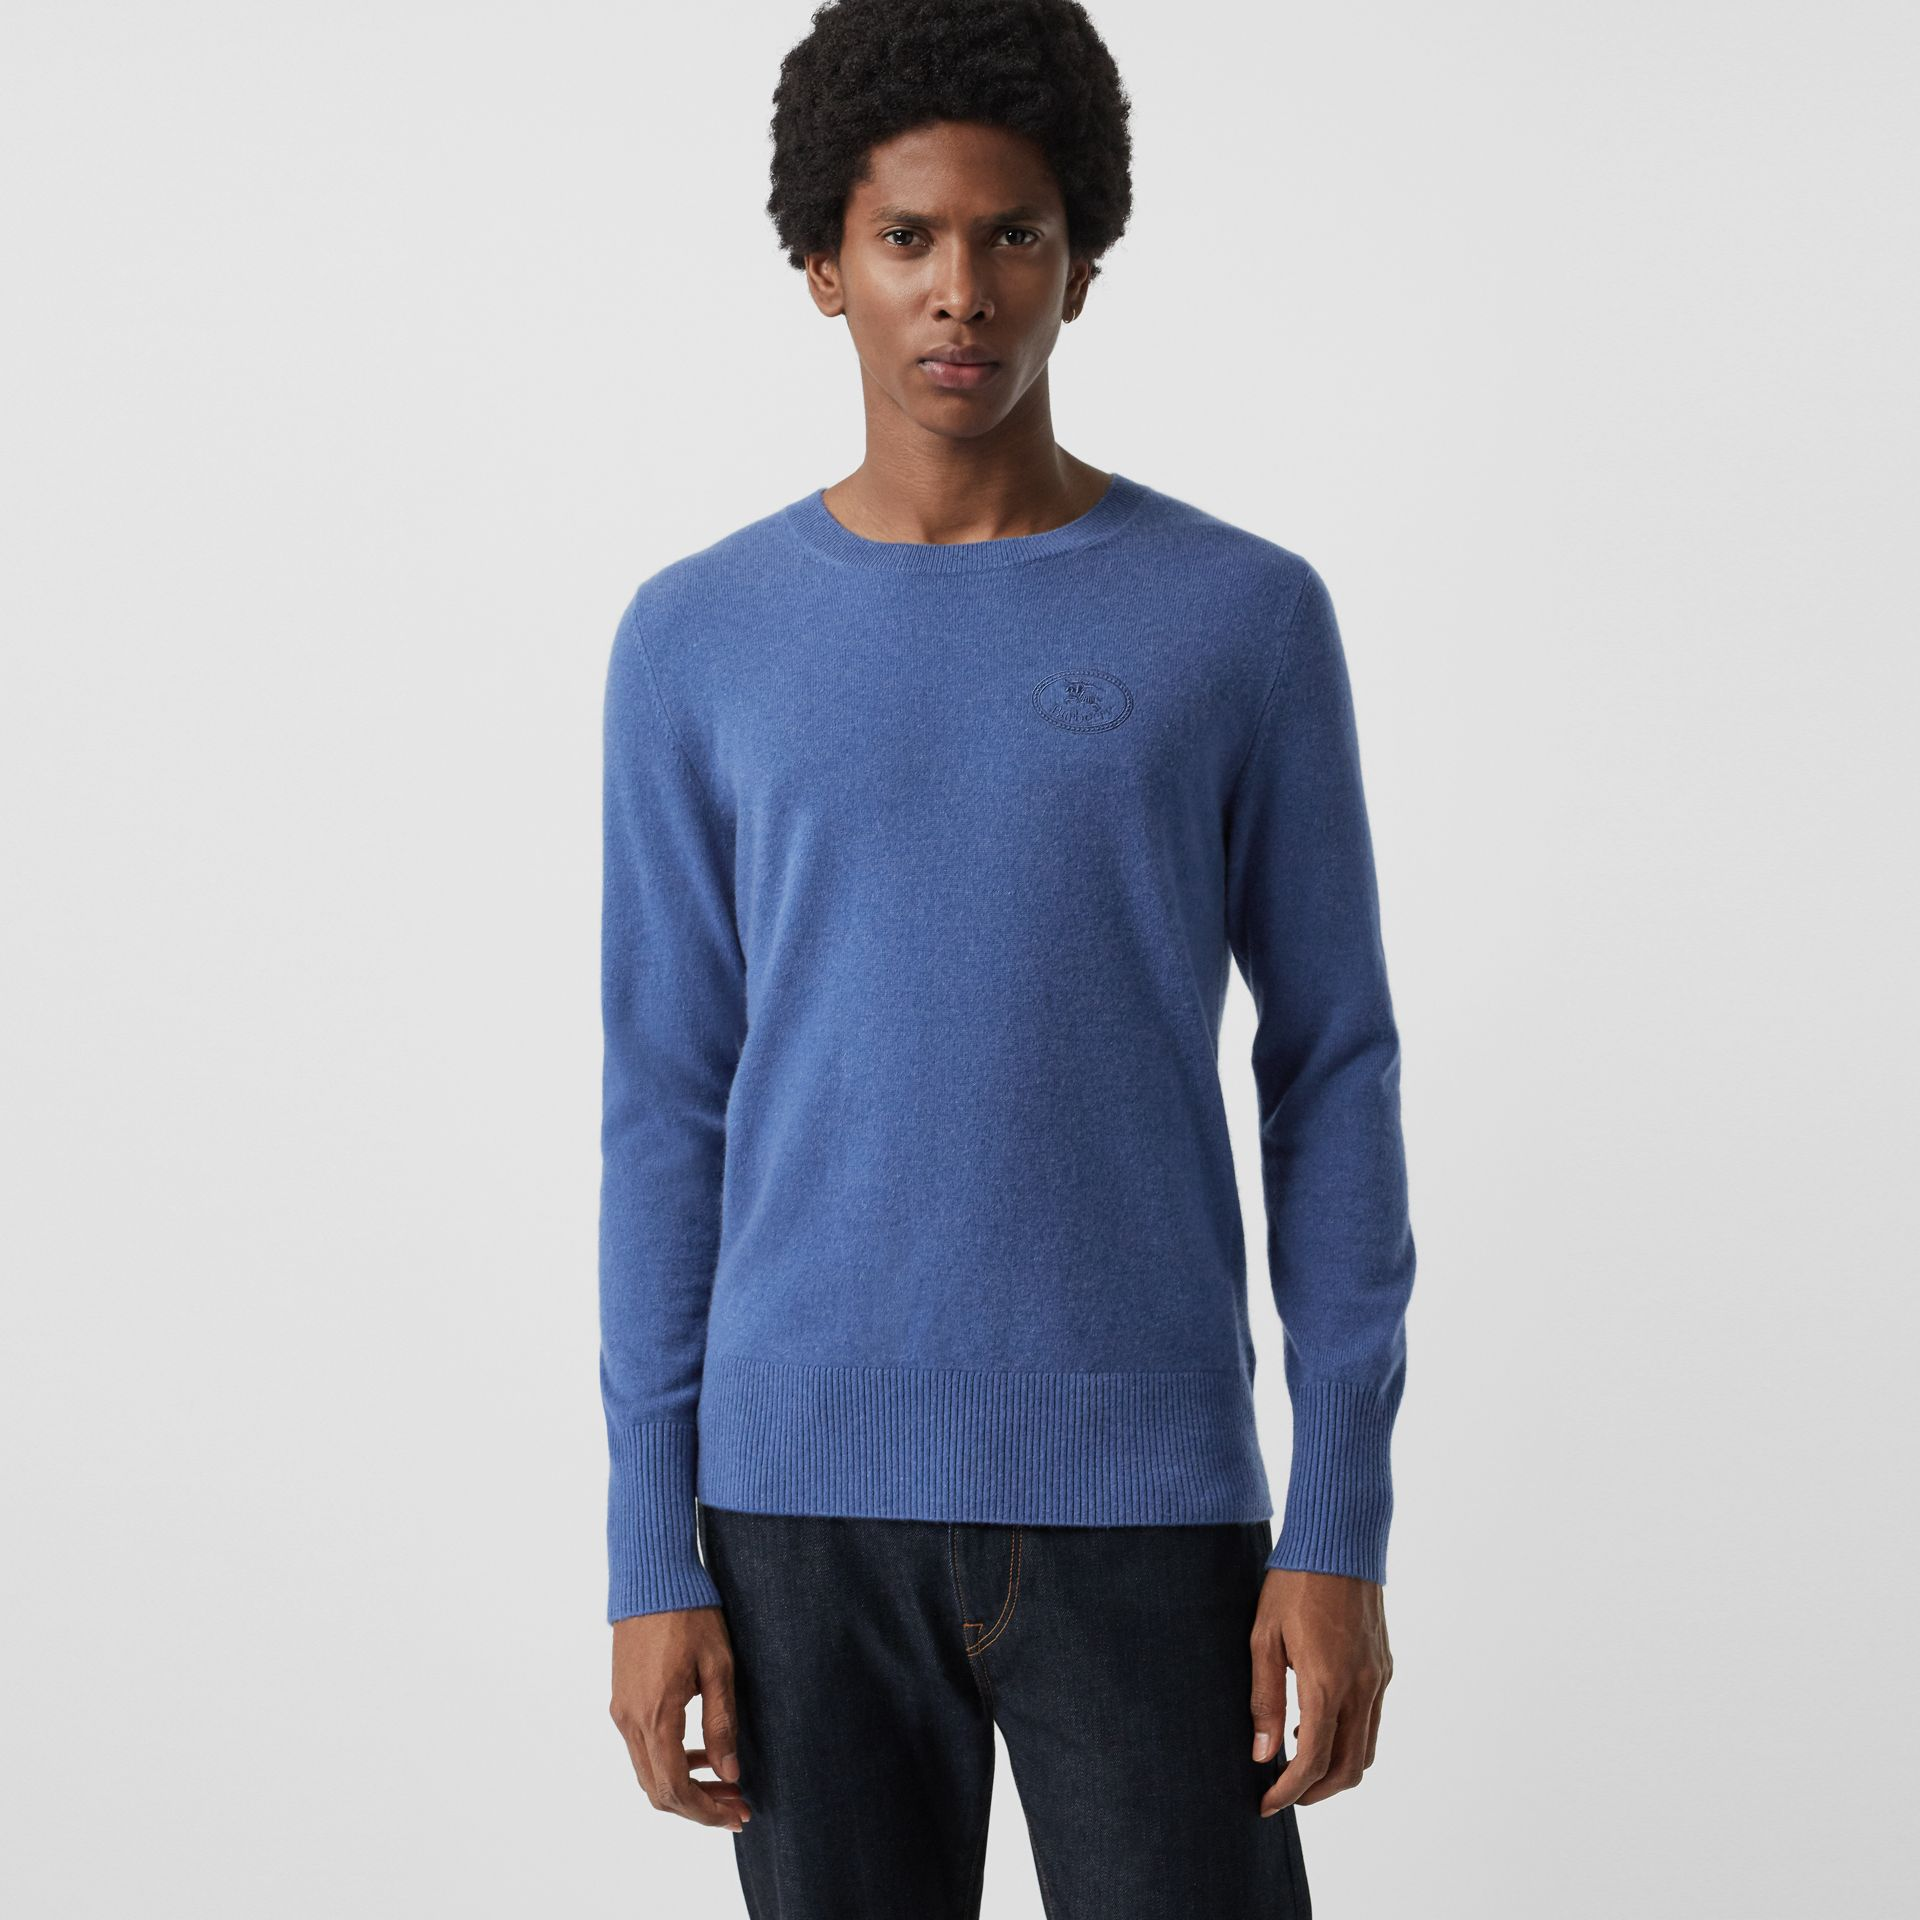 Embroidered Logo Cashmere Sweater in Dusty Blue - Men | Burberry United Kingdom - gallery image 0